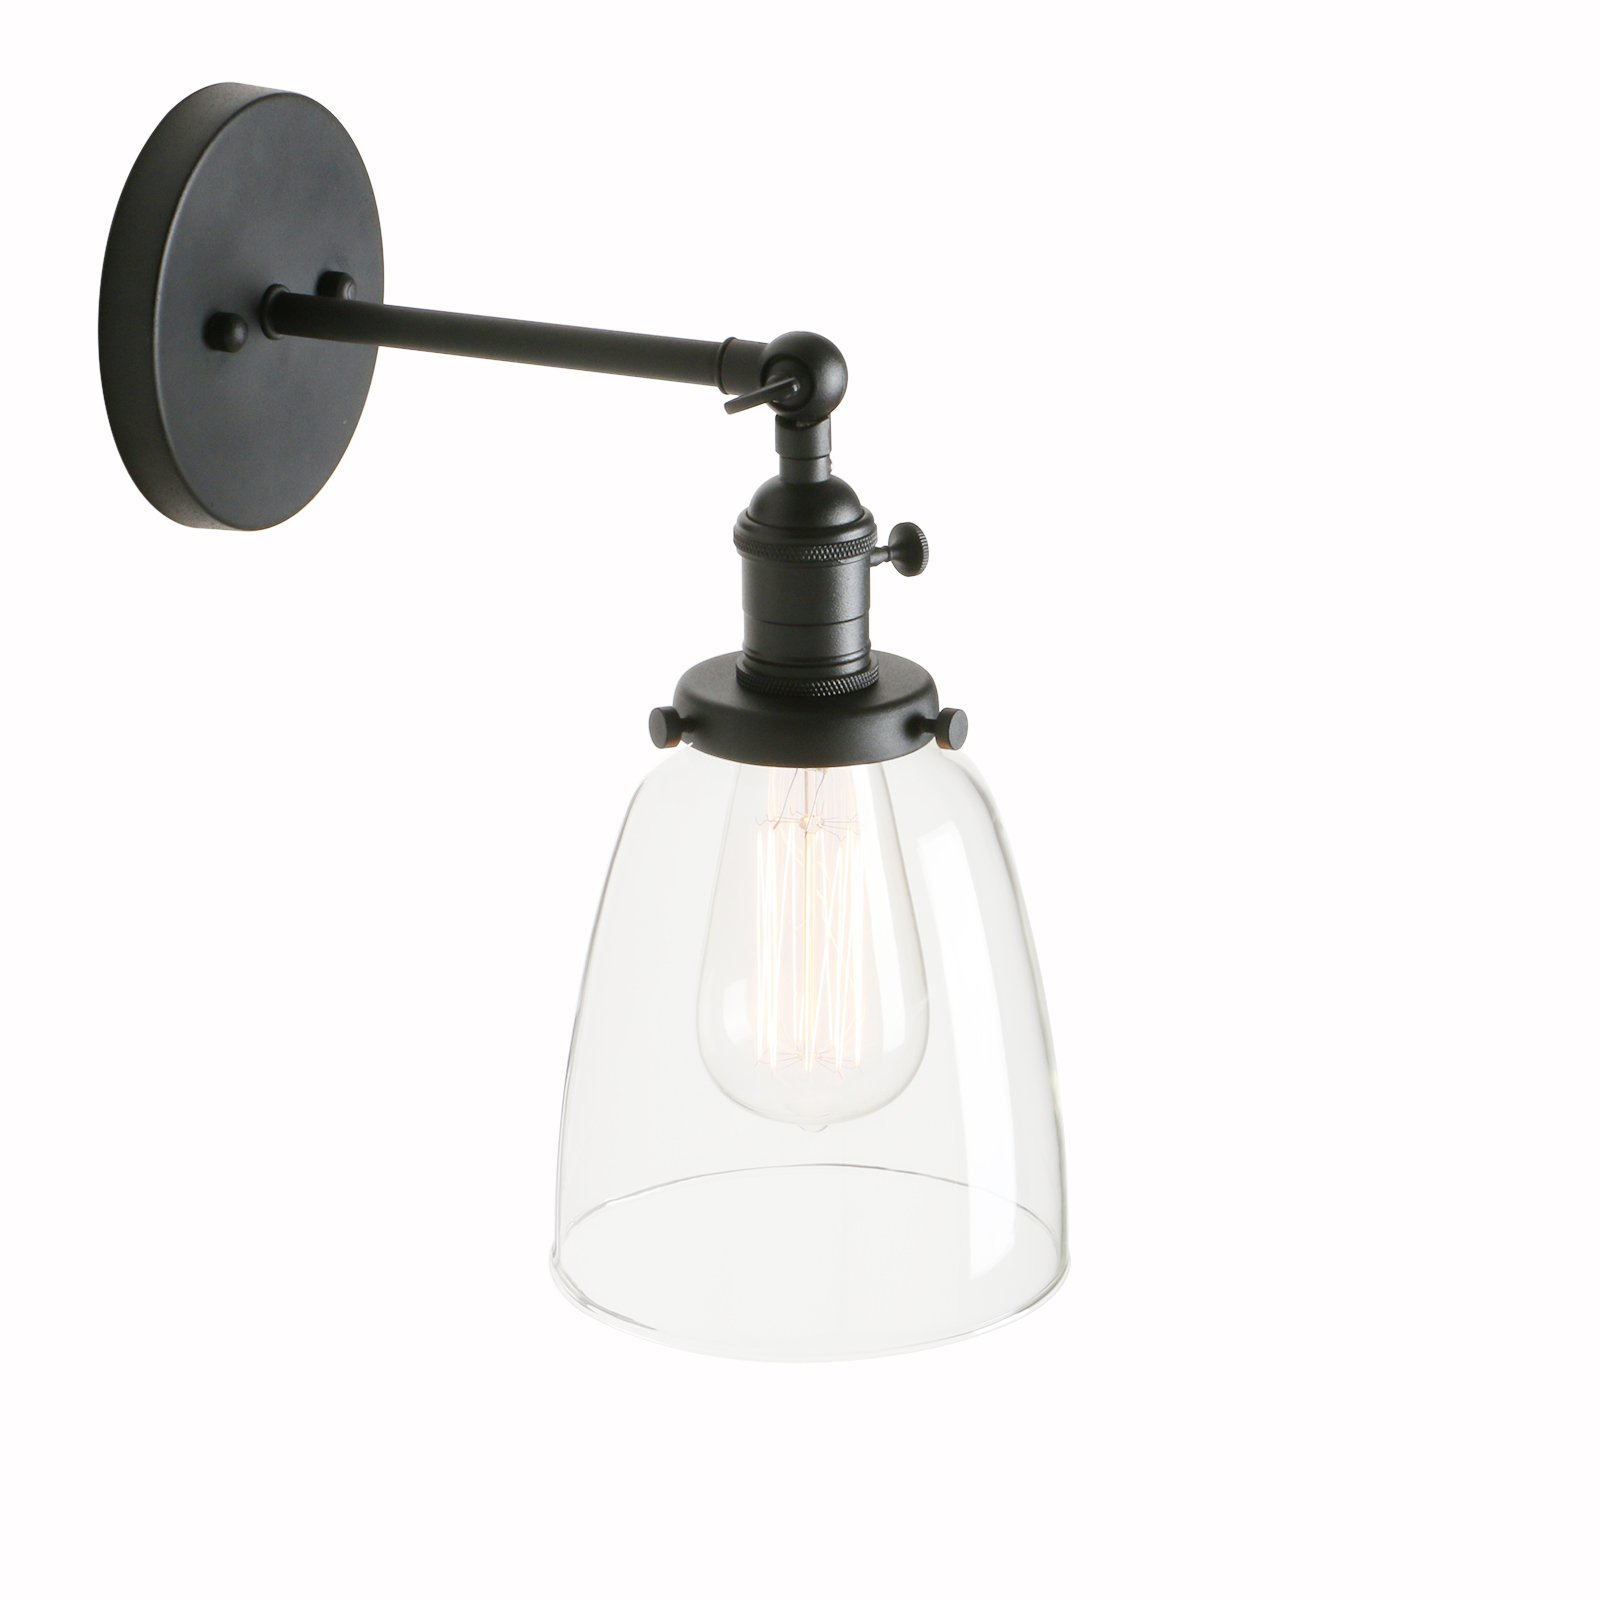 Pathson Indoor Wall Lighting Fixtures with Switch, Industrial Vintage Wall Sconce Lamp with Metal Base and Clear Glass Shade for Farmhouse Headboard Bedroom Garage Porch Cafe Club